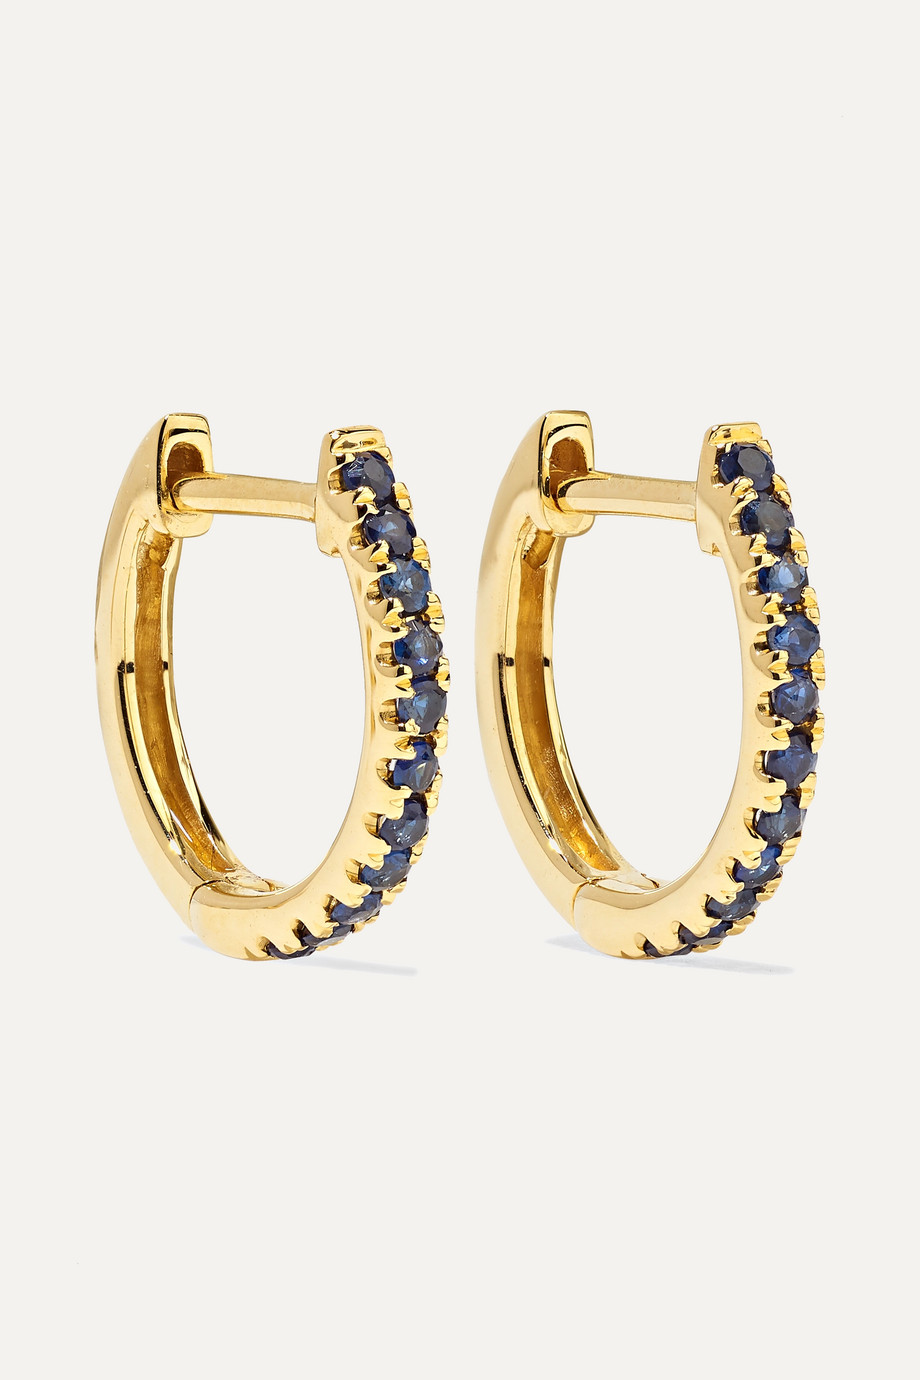 Anita Ko Huggies 18-karat gold sapphire earrings